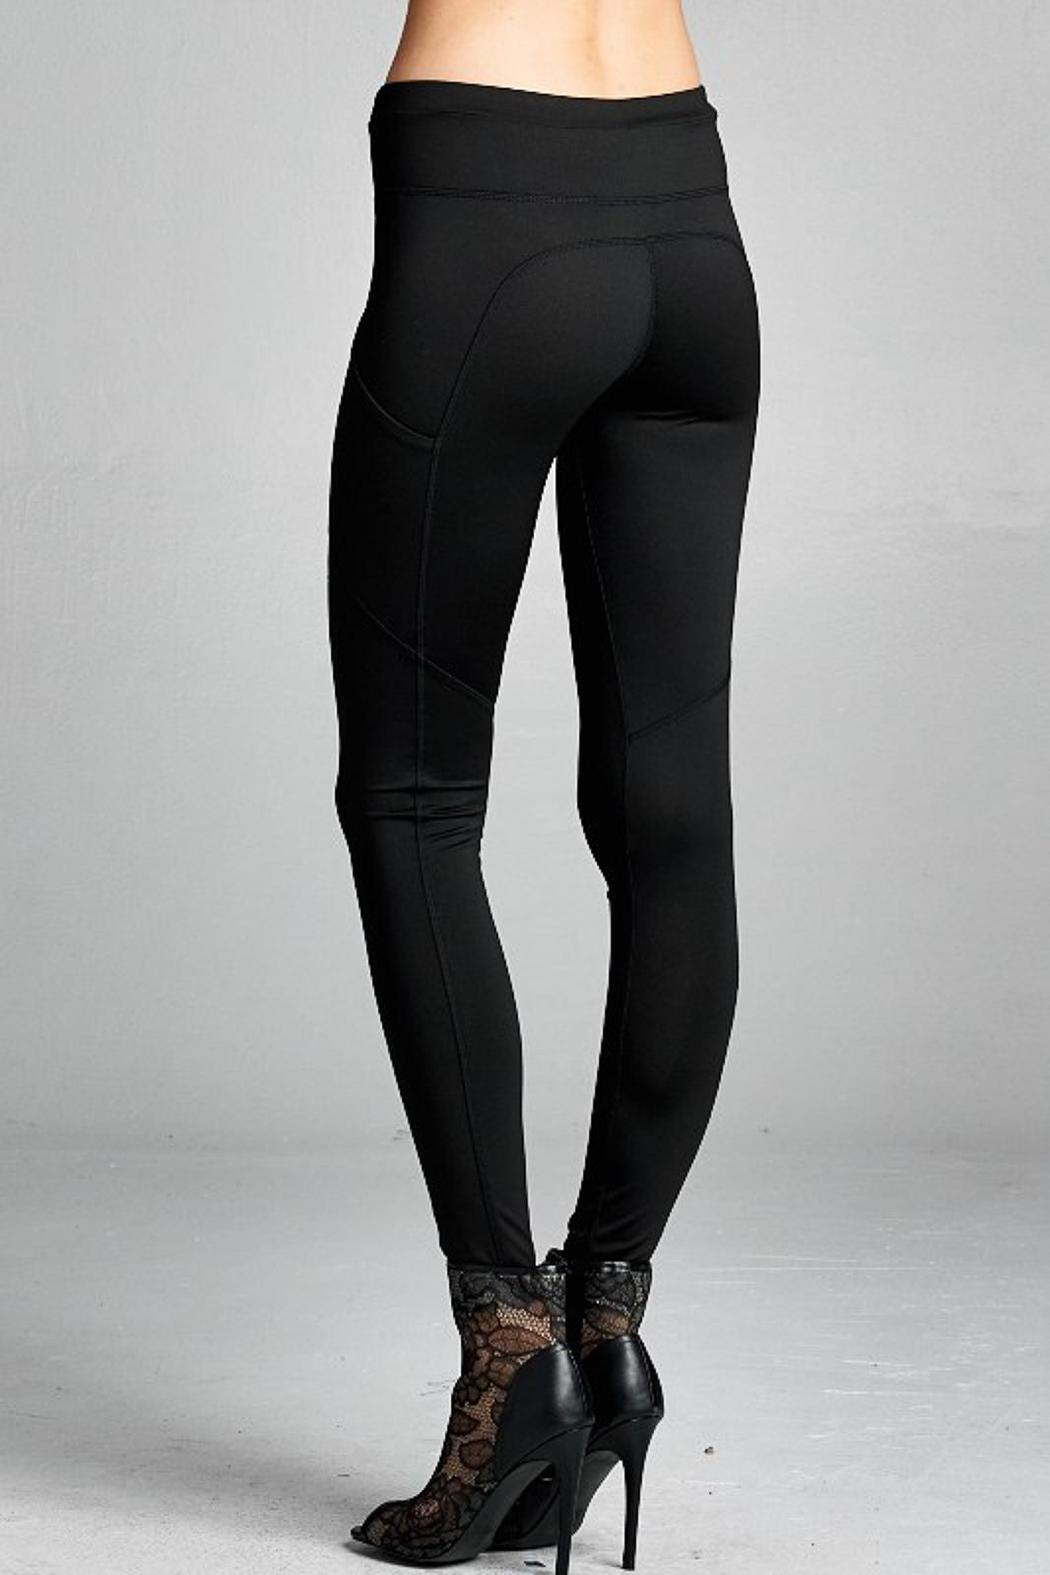 People Outfitter Street Yoga Pants - Side Cropped Image